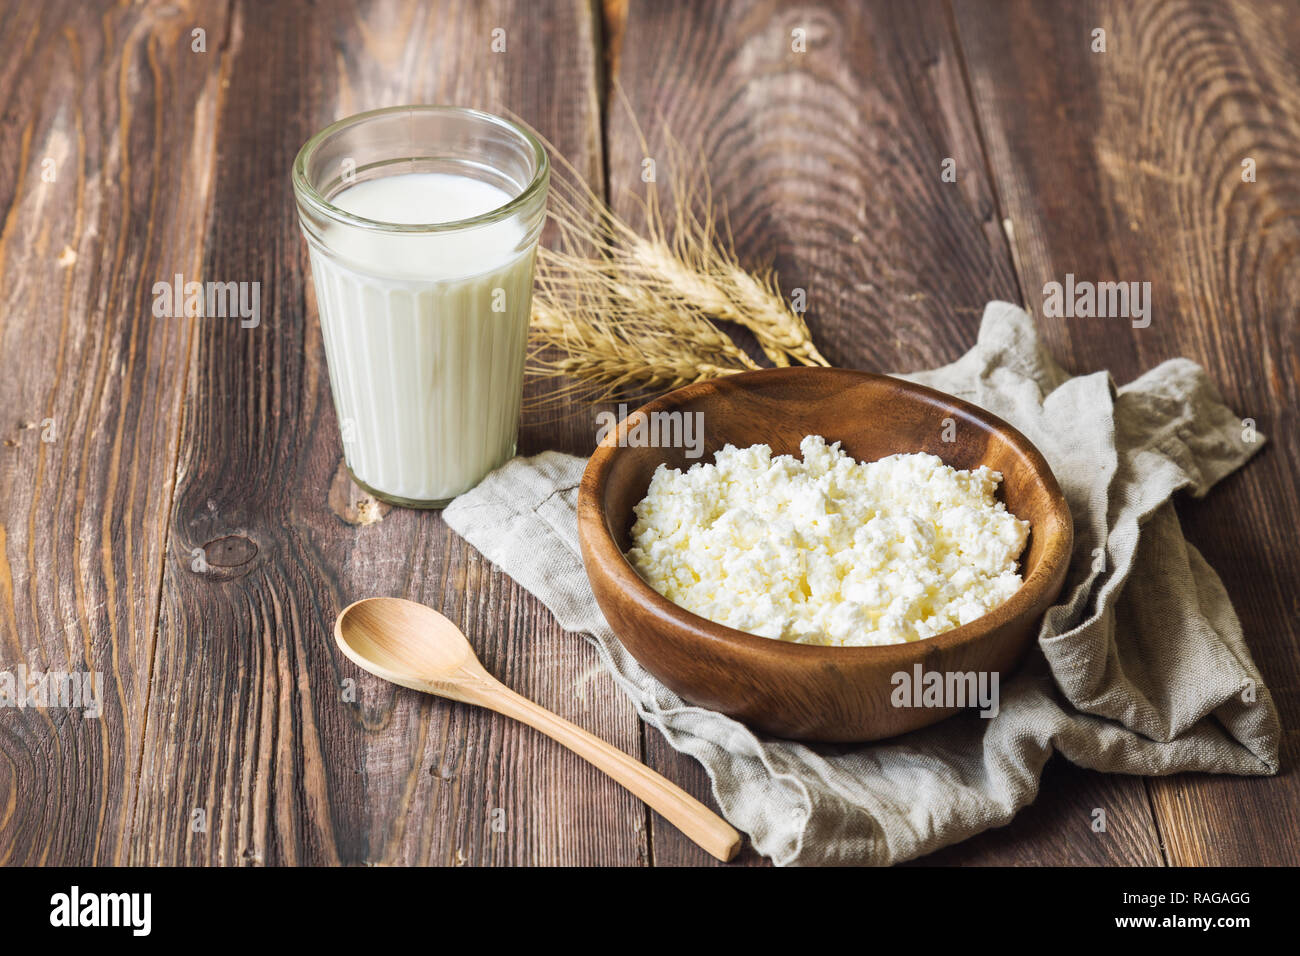 Cottage cheese, milk and ears of wheat on rustic wooden background. Dairy products for jewish holiday Shavuot. - Stock Image